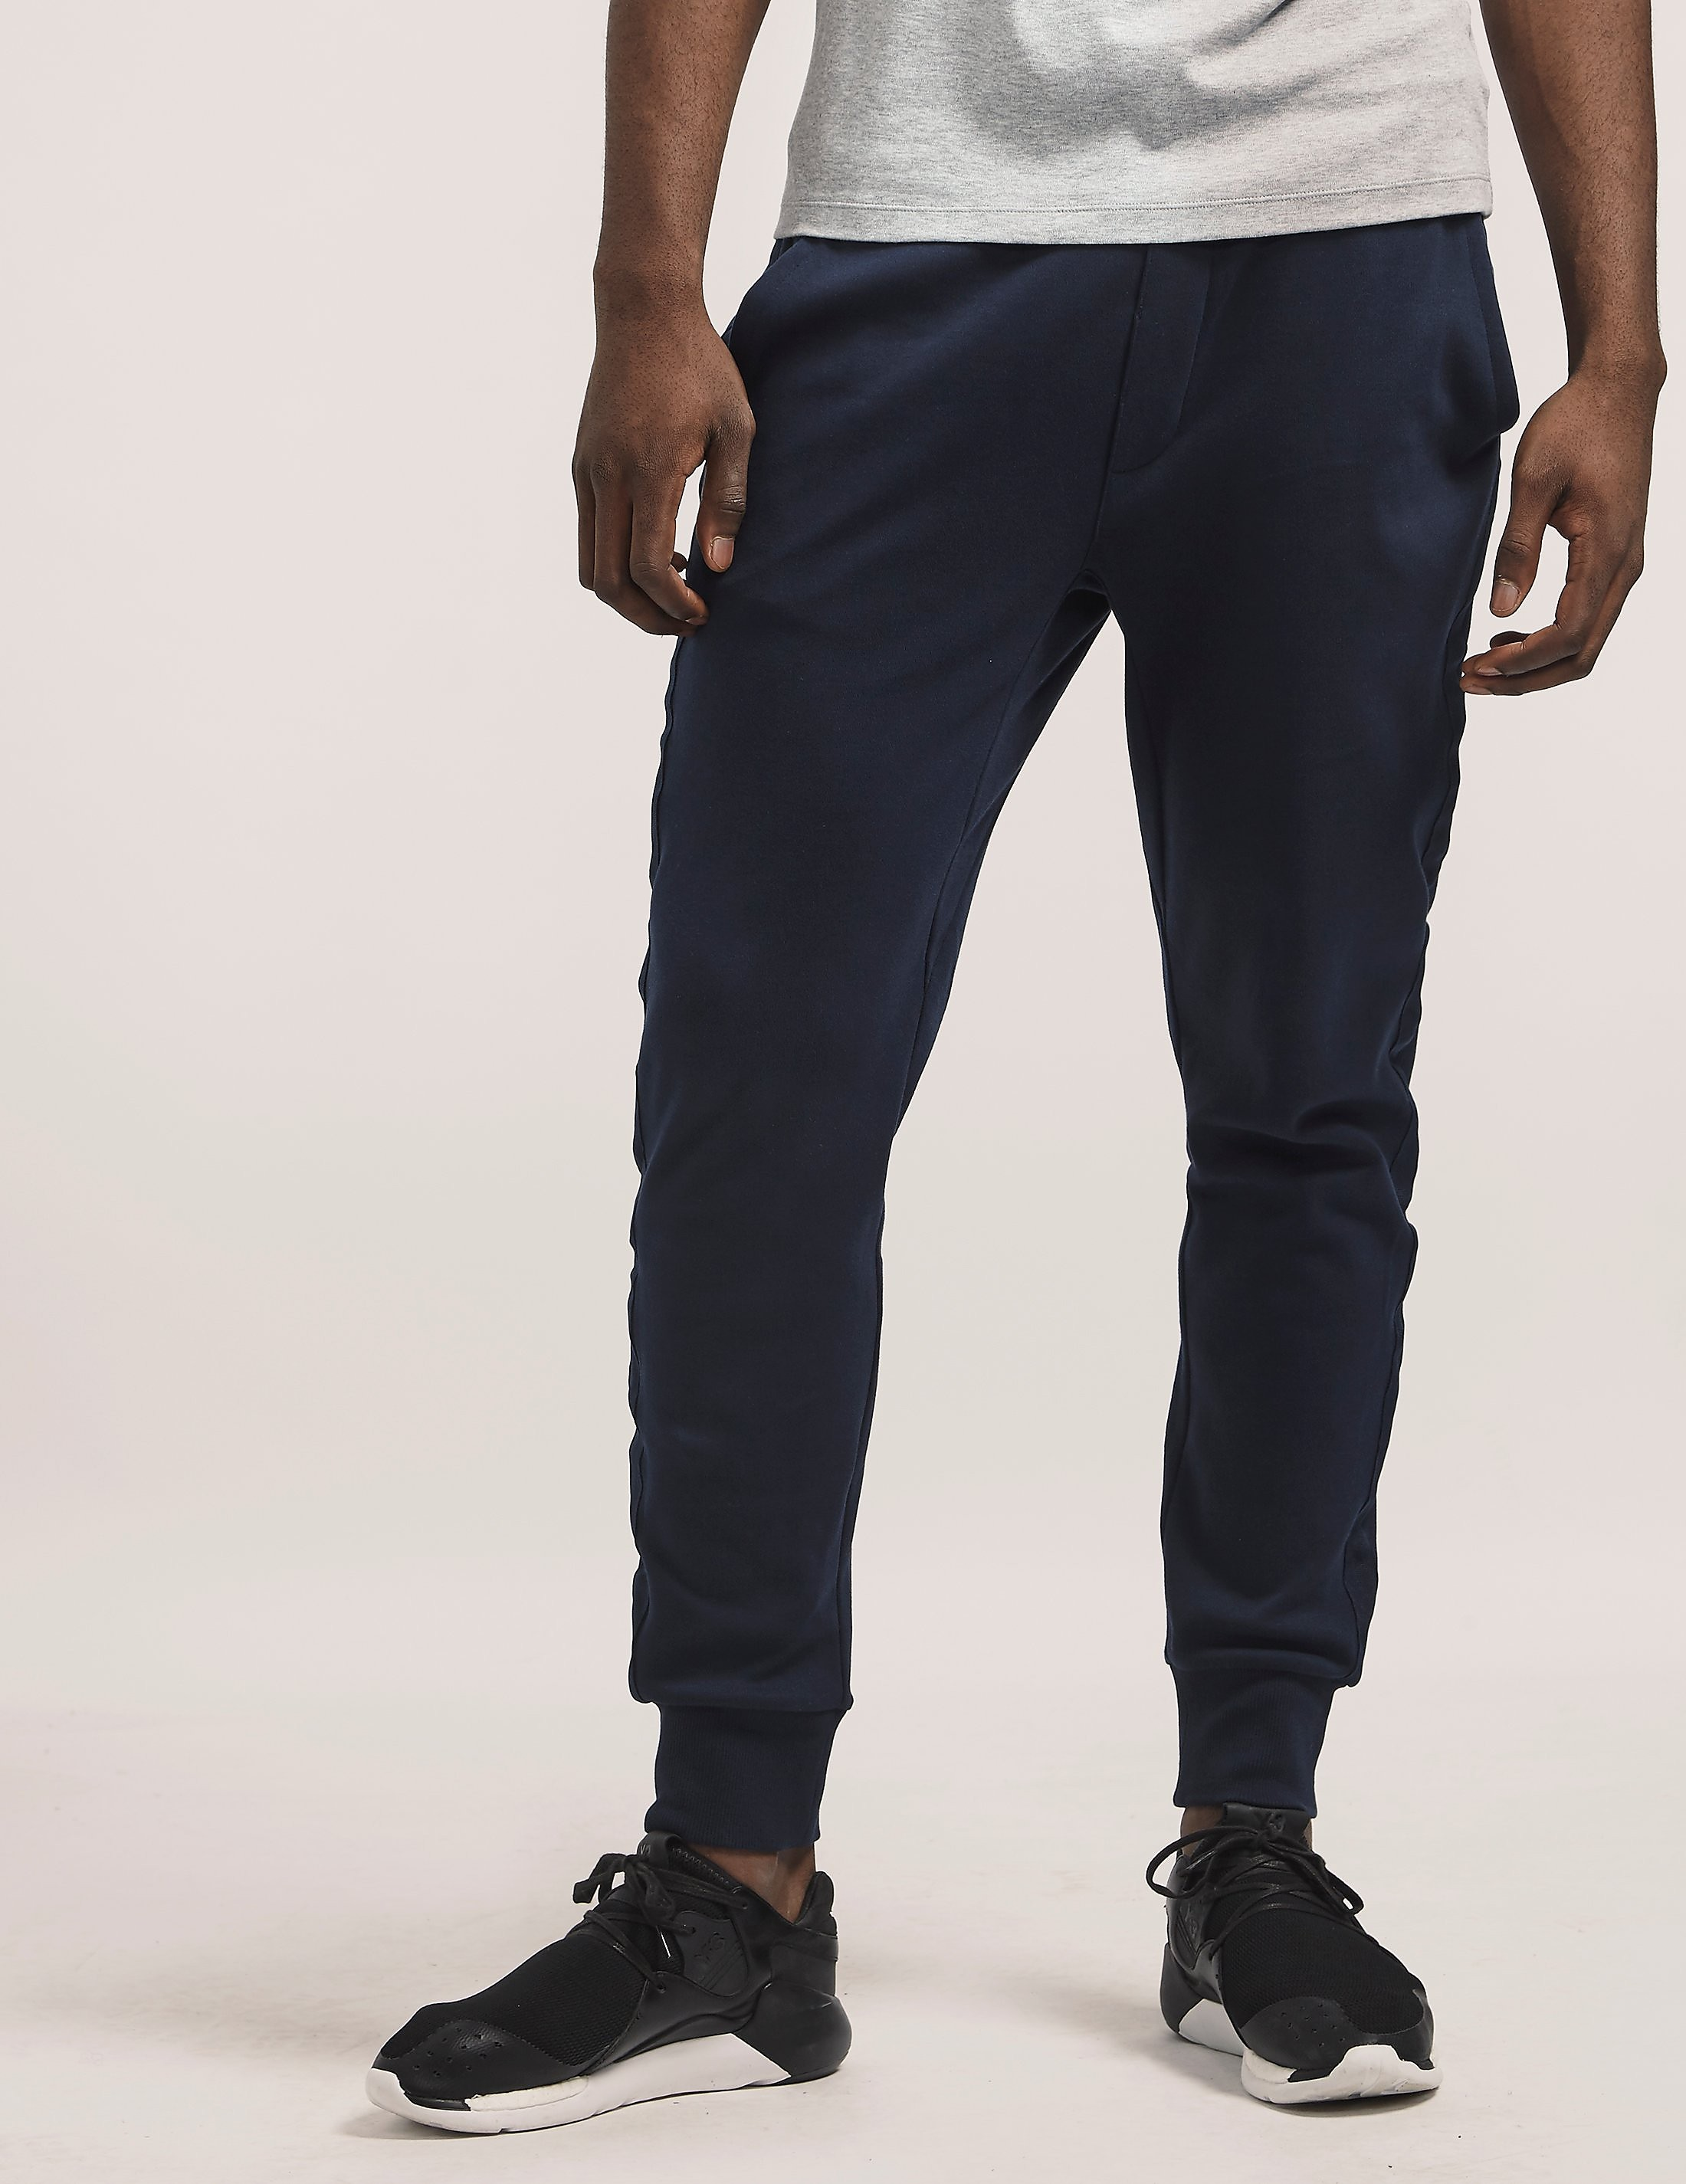 Michael Kors Nylon Trim Track Pants